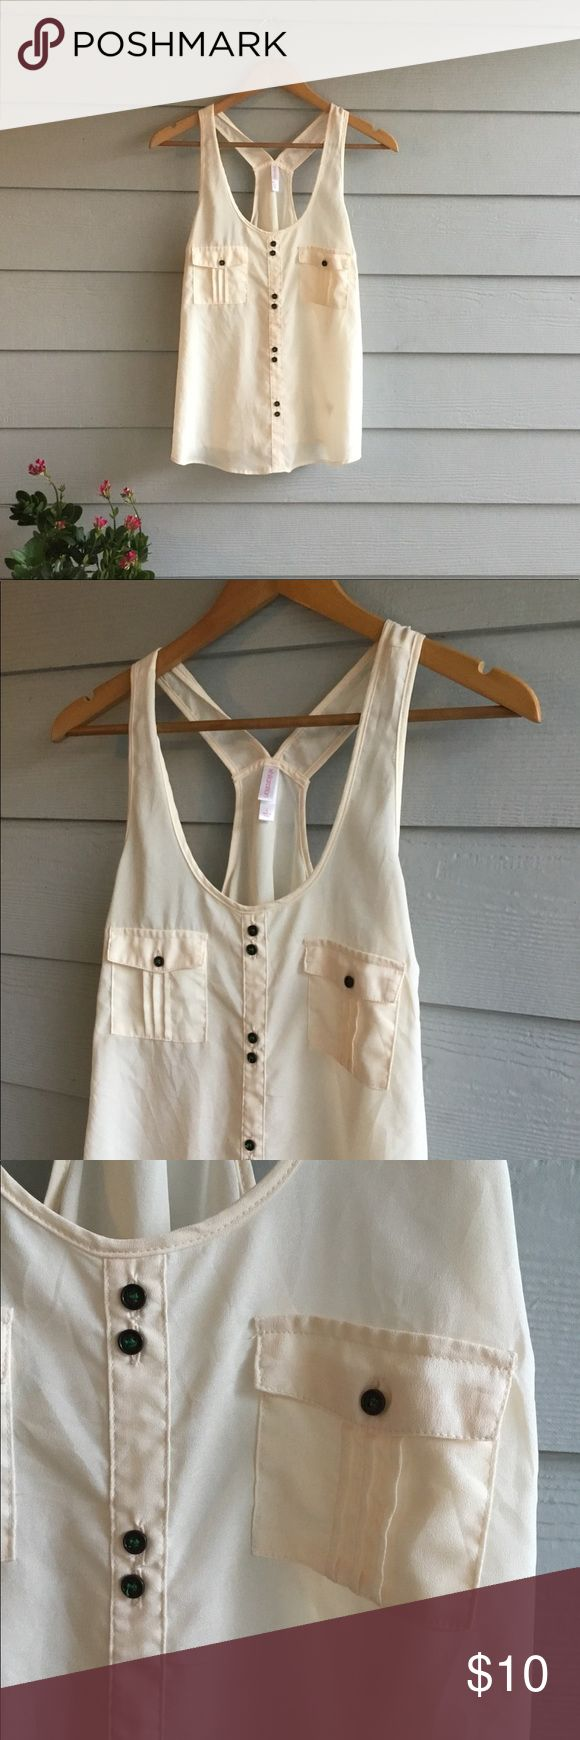 Light & breezy tank Excellent condition. Ivory/cream color with metal faux buttons down front. Sheer not too sheer to stand alone;) Tiny green detail on buttons. Racer vback style. Her sister is also available in black NWT:) Tops Tank Tops